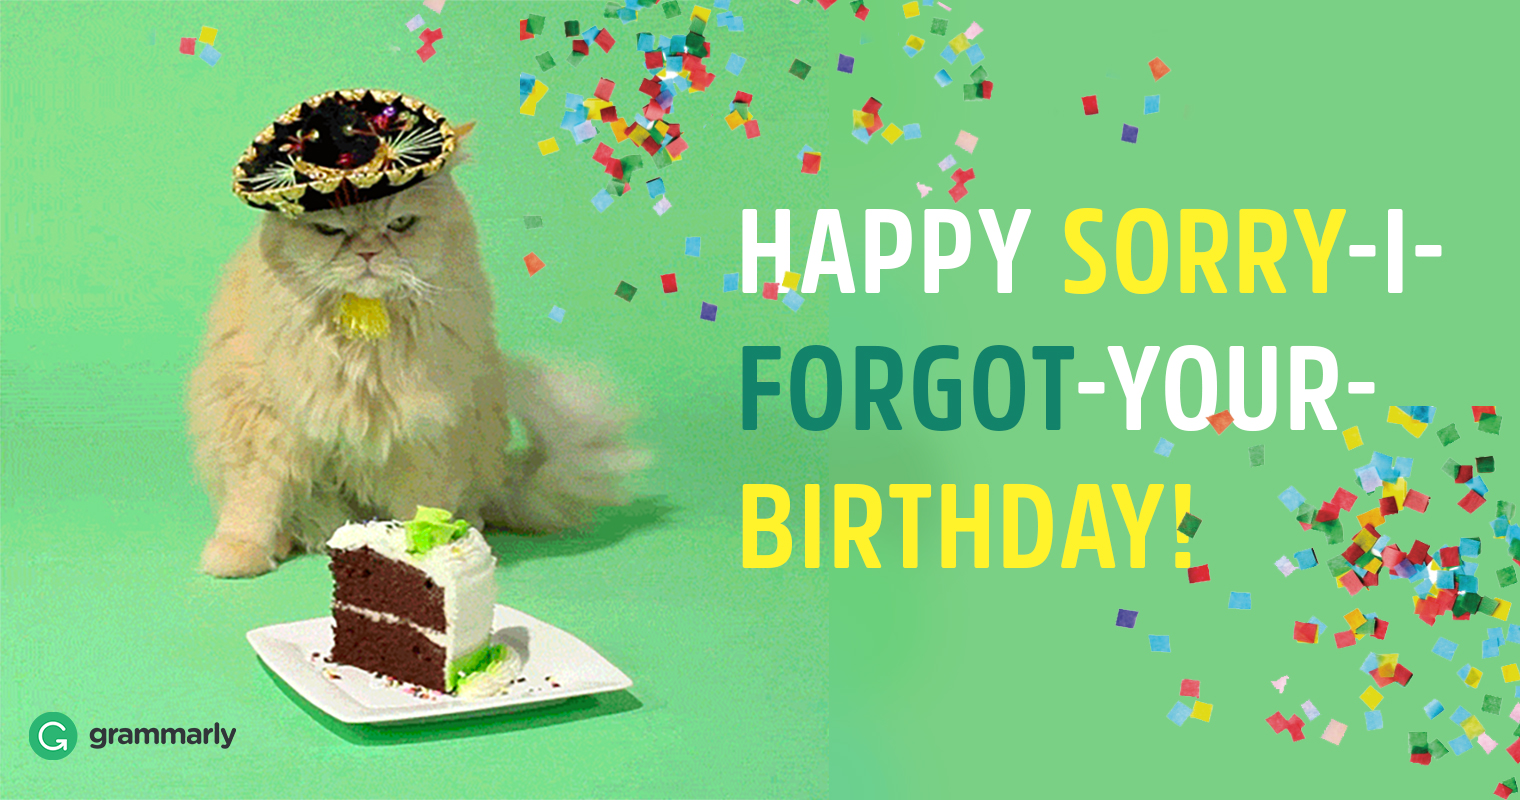 Happy Belated Birthday Or Belated Happy Birthday Grammarly